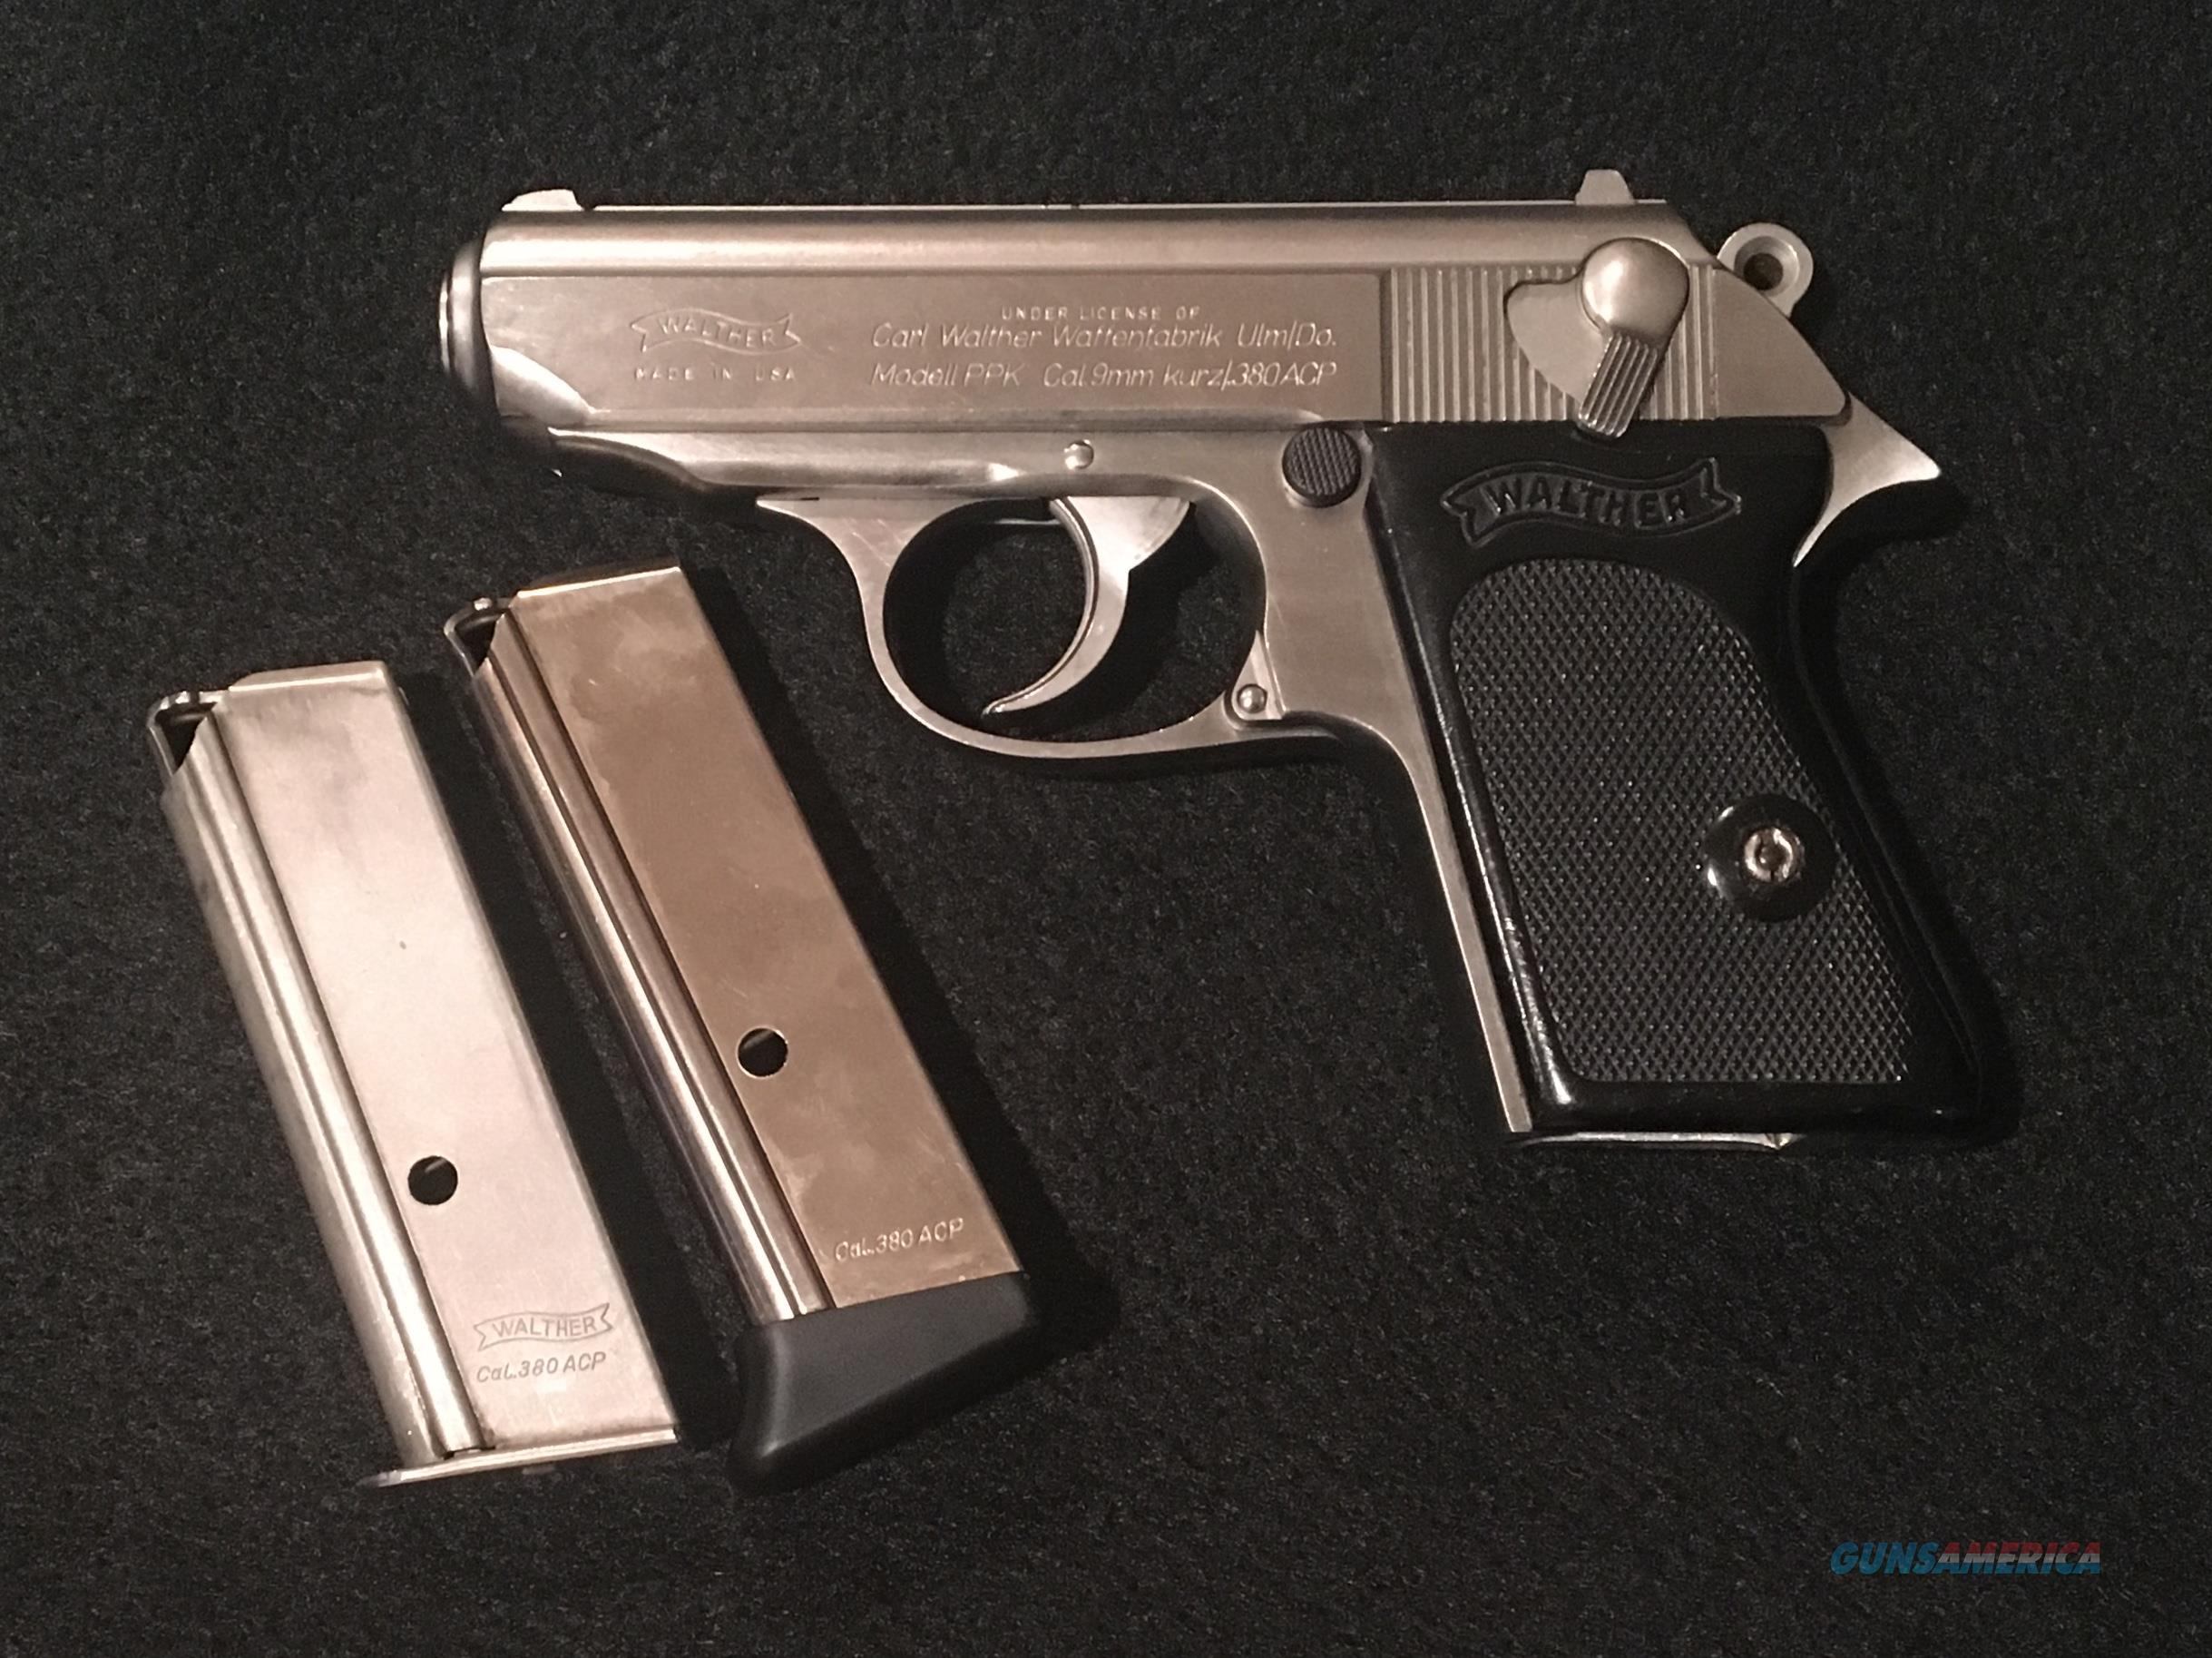 Interarms Walther PPK Stainless 380ACP  Guns > Pistols > Walther Pistols > Post WWII > PPK Series